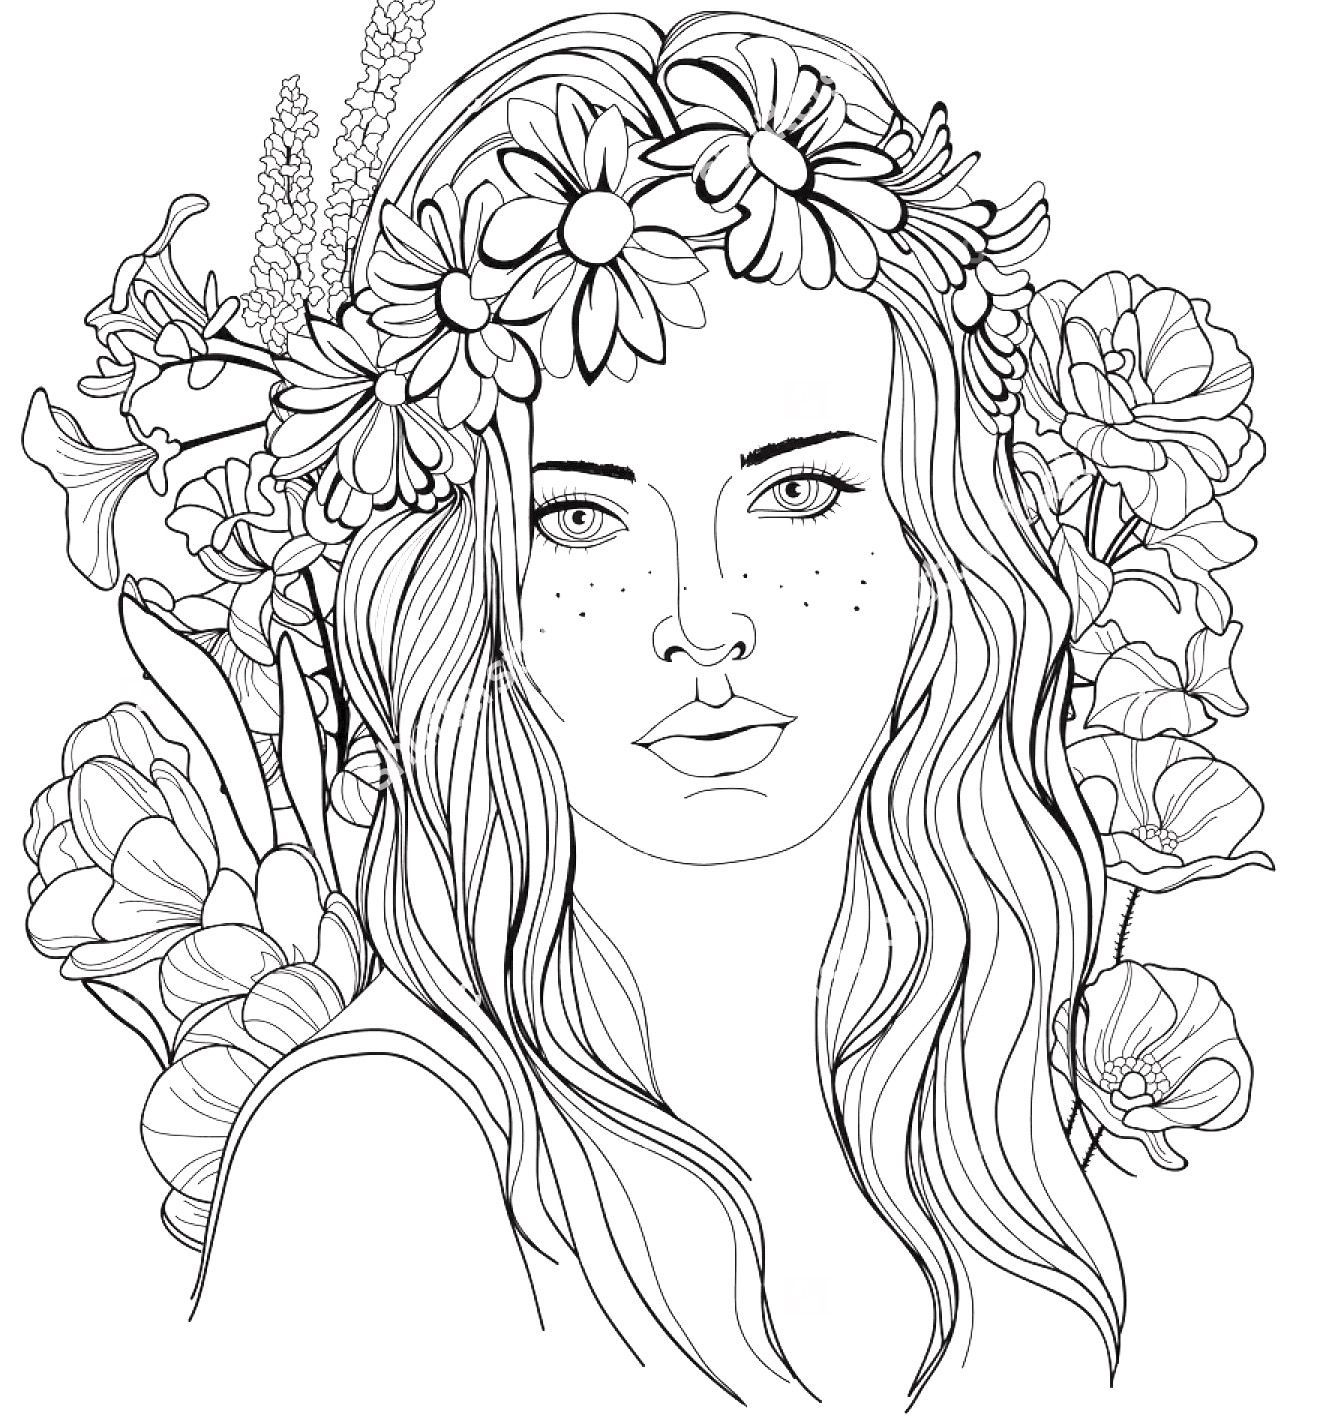 Image of a girl with a floral wreath in her hair coloring page ...